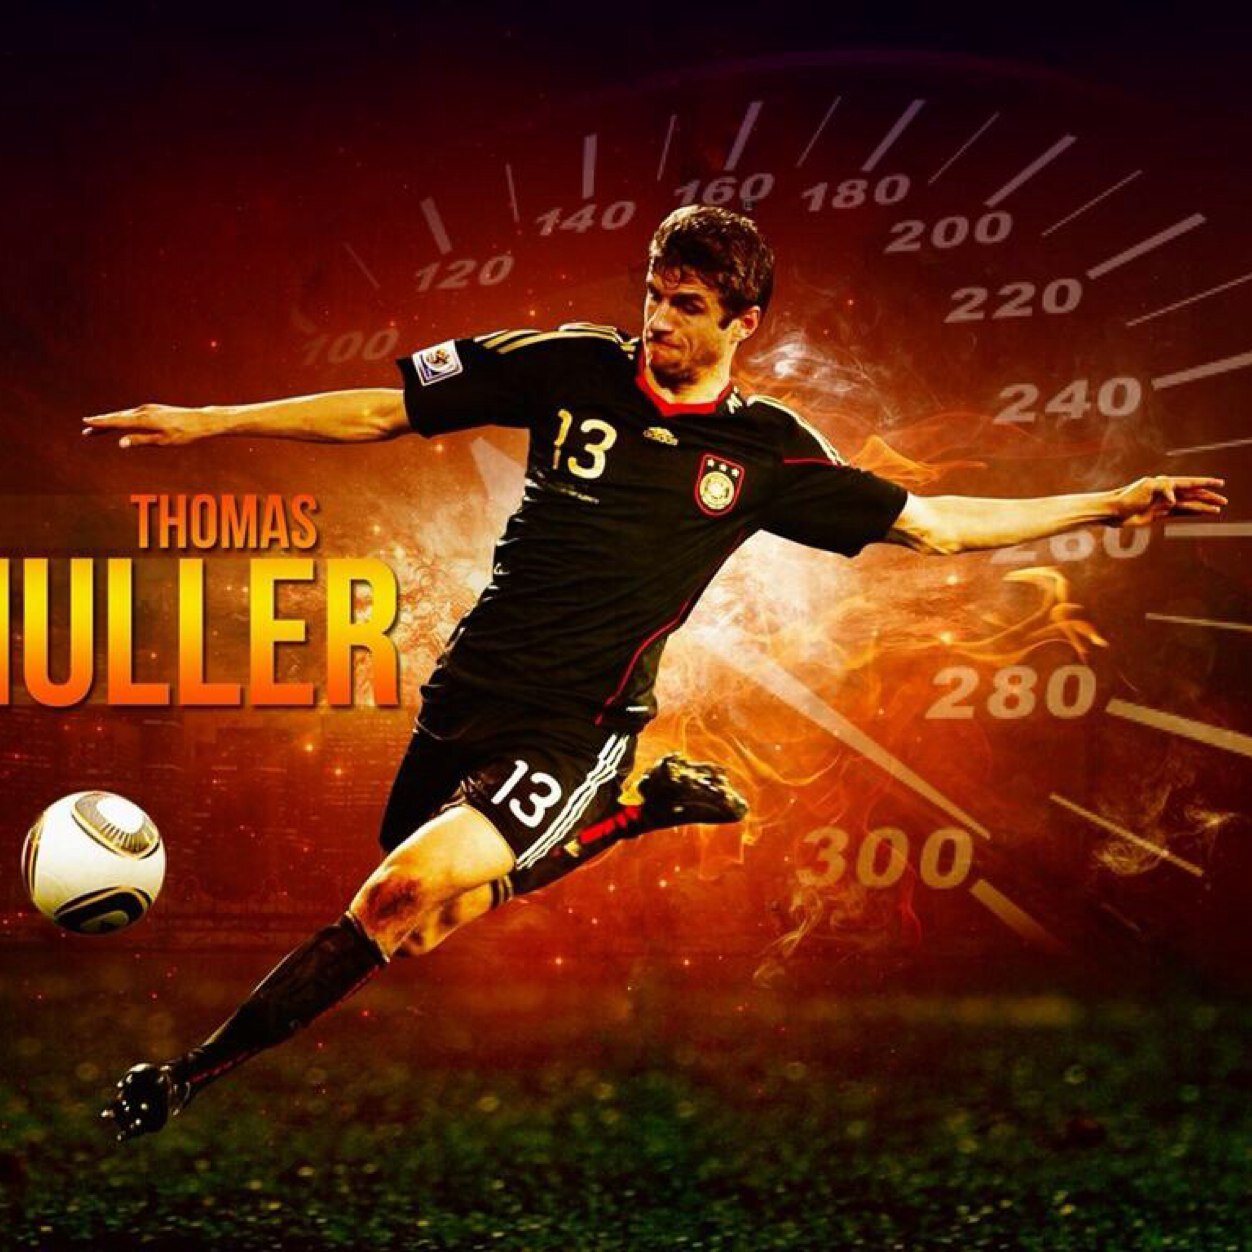 Ronaldo Hd Wallpapers Football 欧州サッカー画像bot Muller0404 Twitter